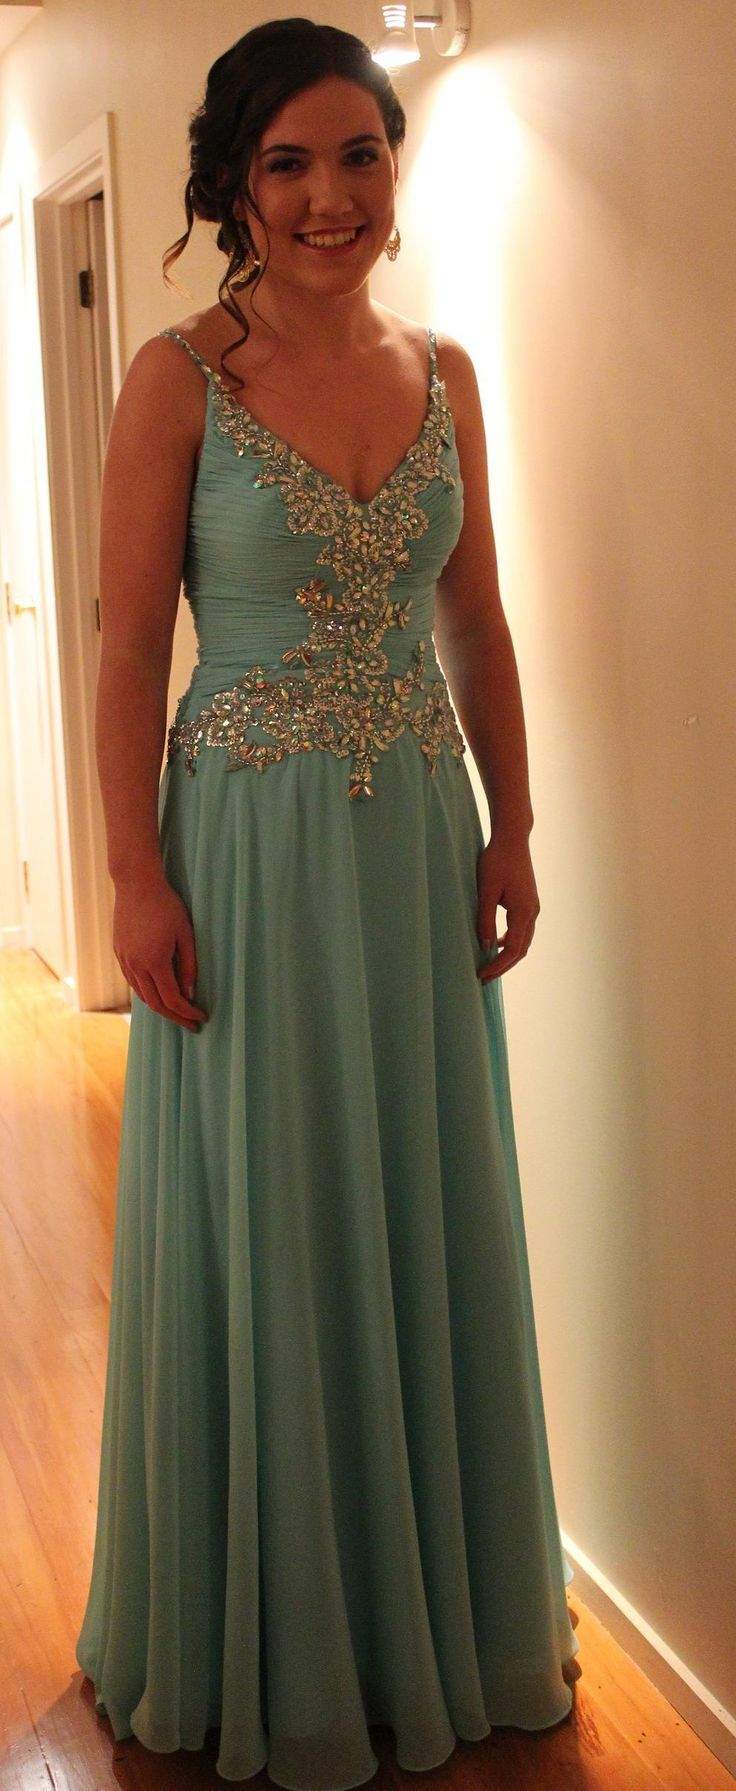 Molly looking so pretty and off to the Albany Senior Ball 2015. Thank you for choosing a Dave and Johnny gown from Bridal and Ball NZ